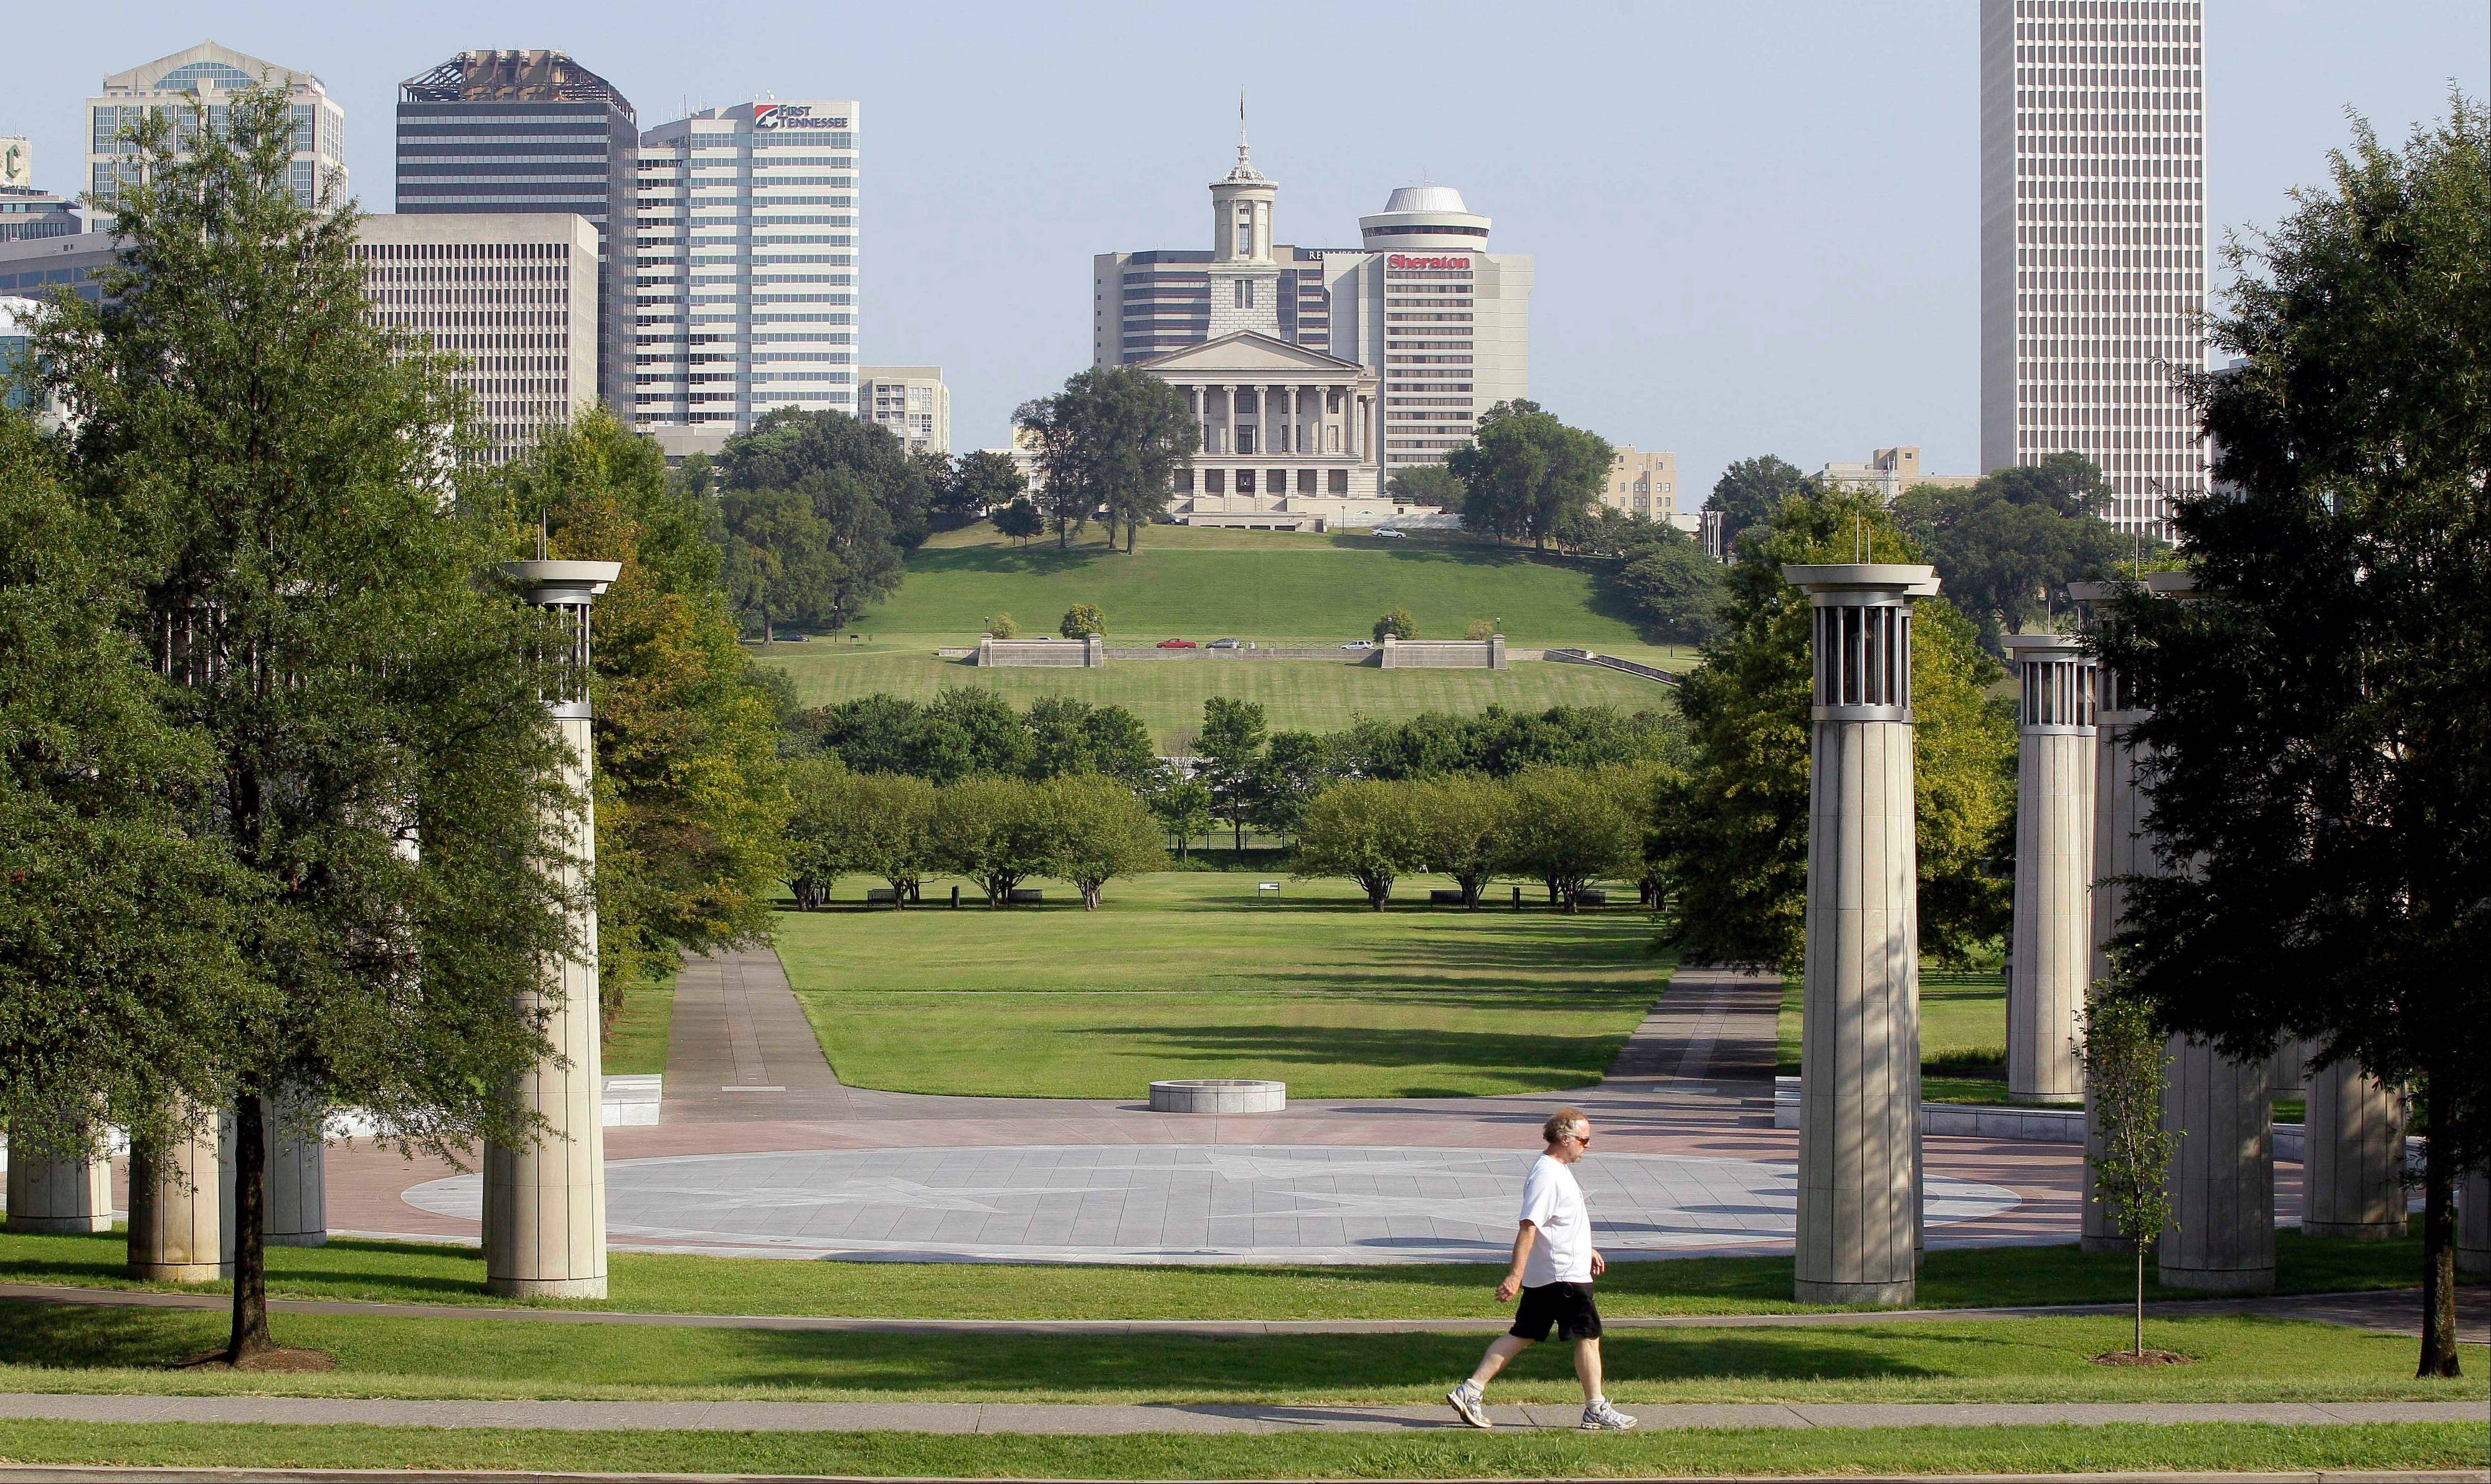 The Bicentennial Capitol Mall State Park at the foot of the state Capitol building in Nashville, Tenn., will be the site for the National Folk Festival held Labor Day weekend.